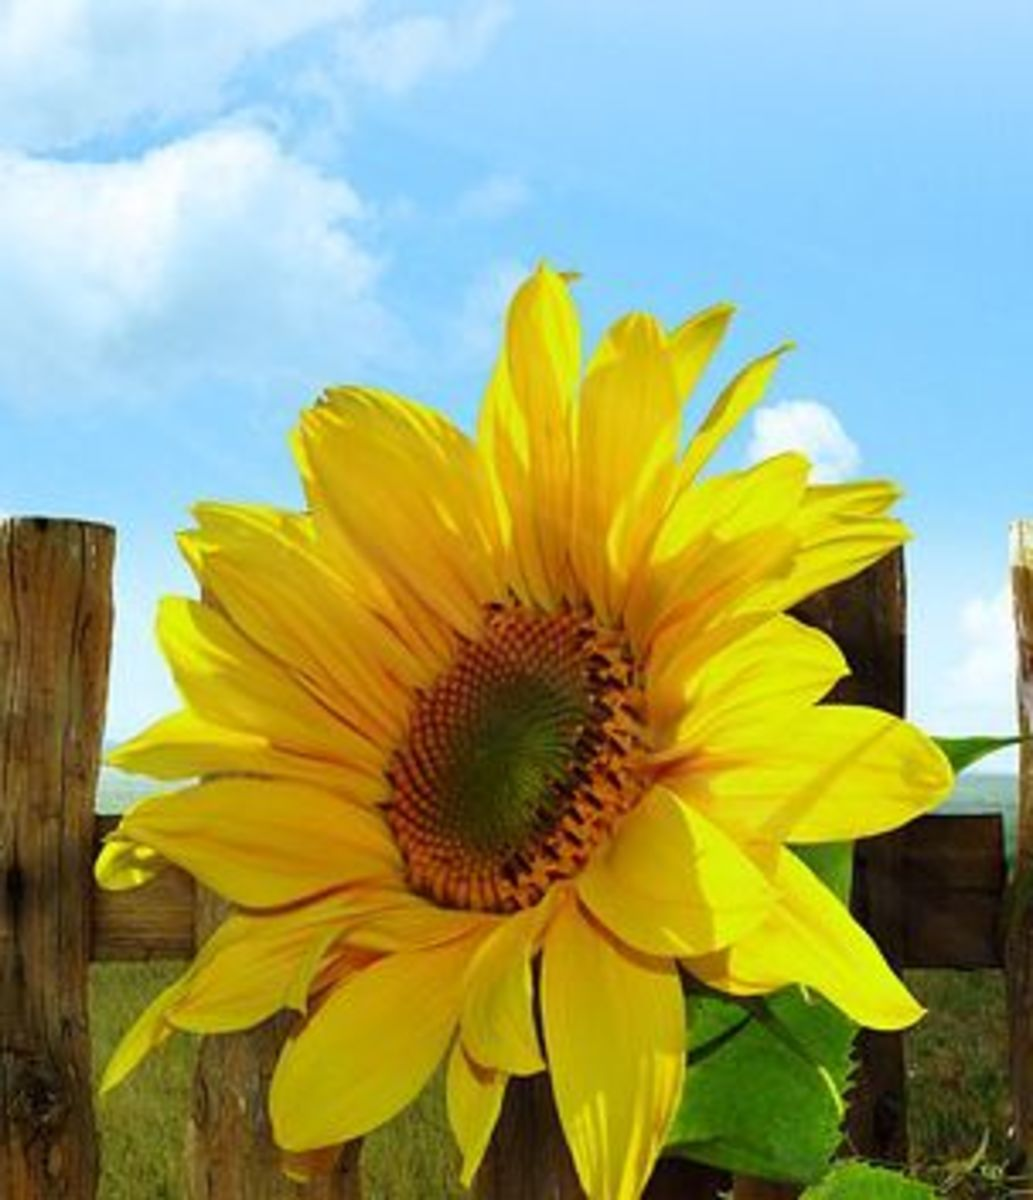 Sunflower against a fence and blue country sky.